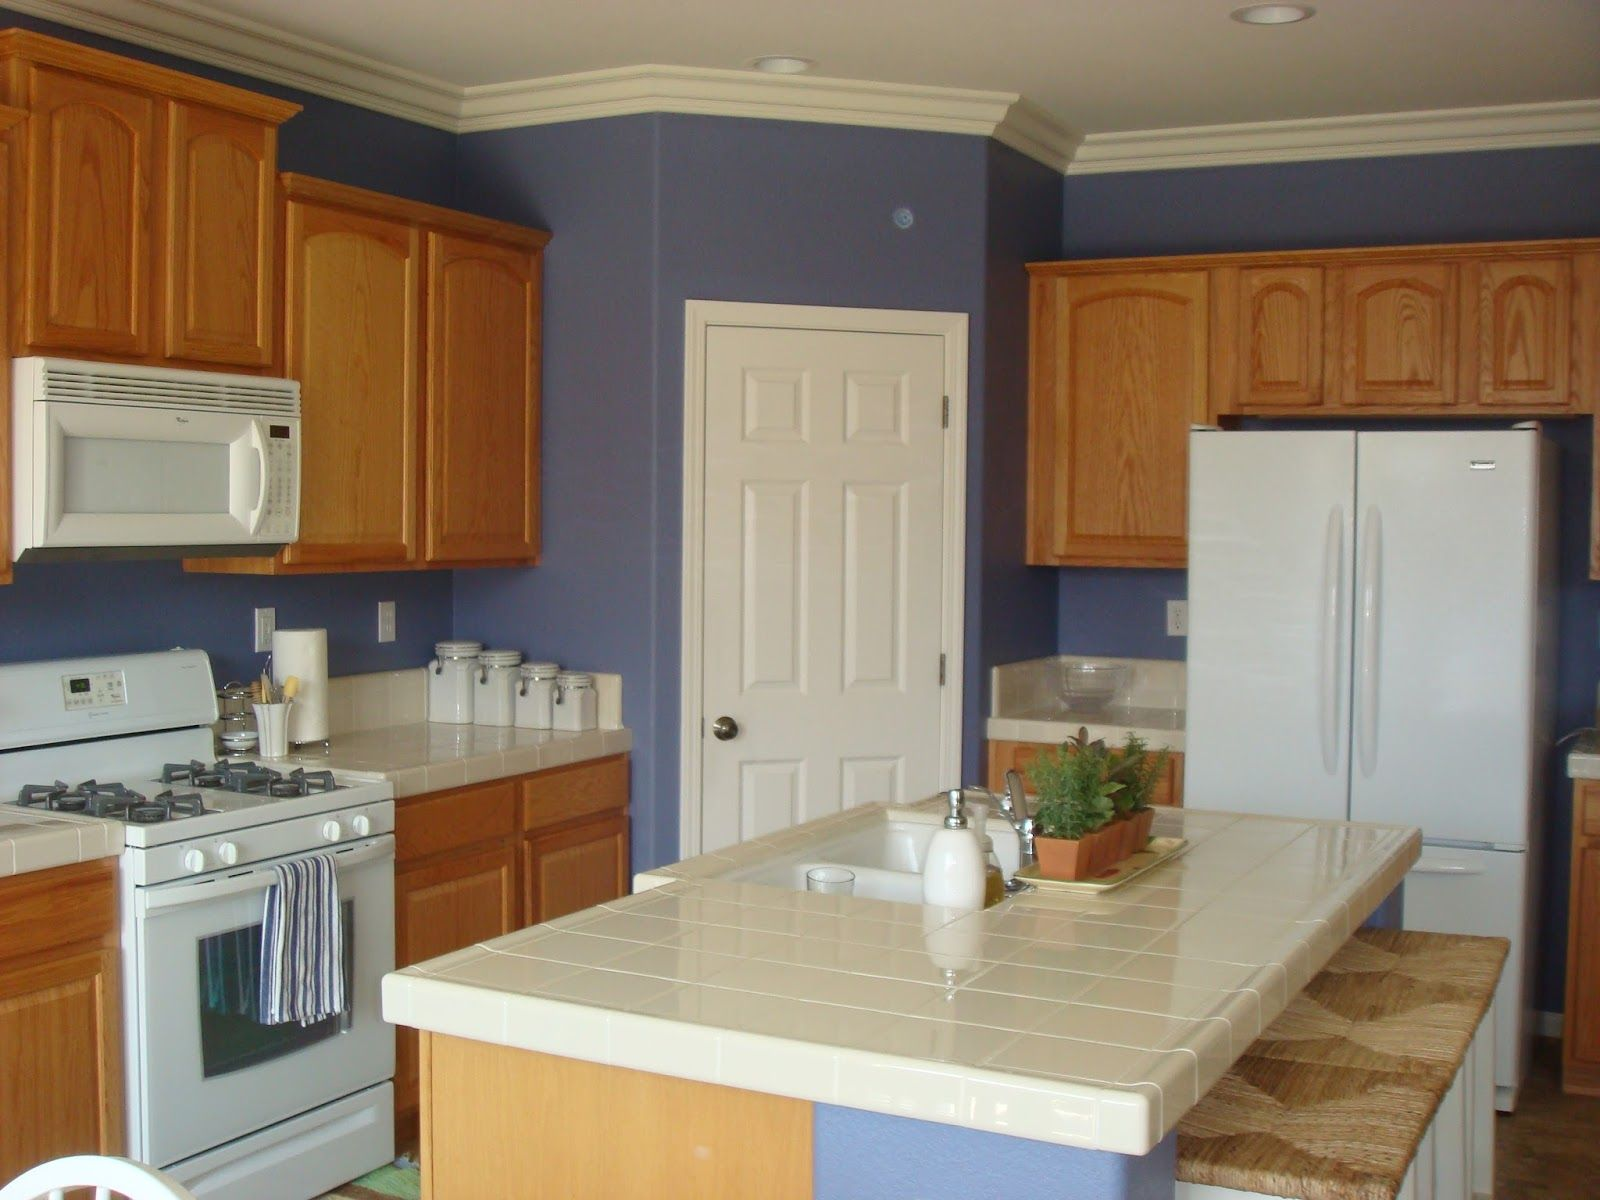 ideas royalty free stock granite blue countertops with new inspirations image countertop kitchen